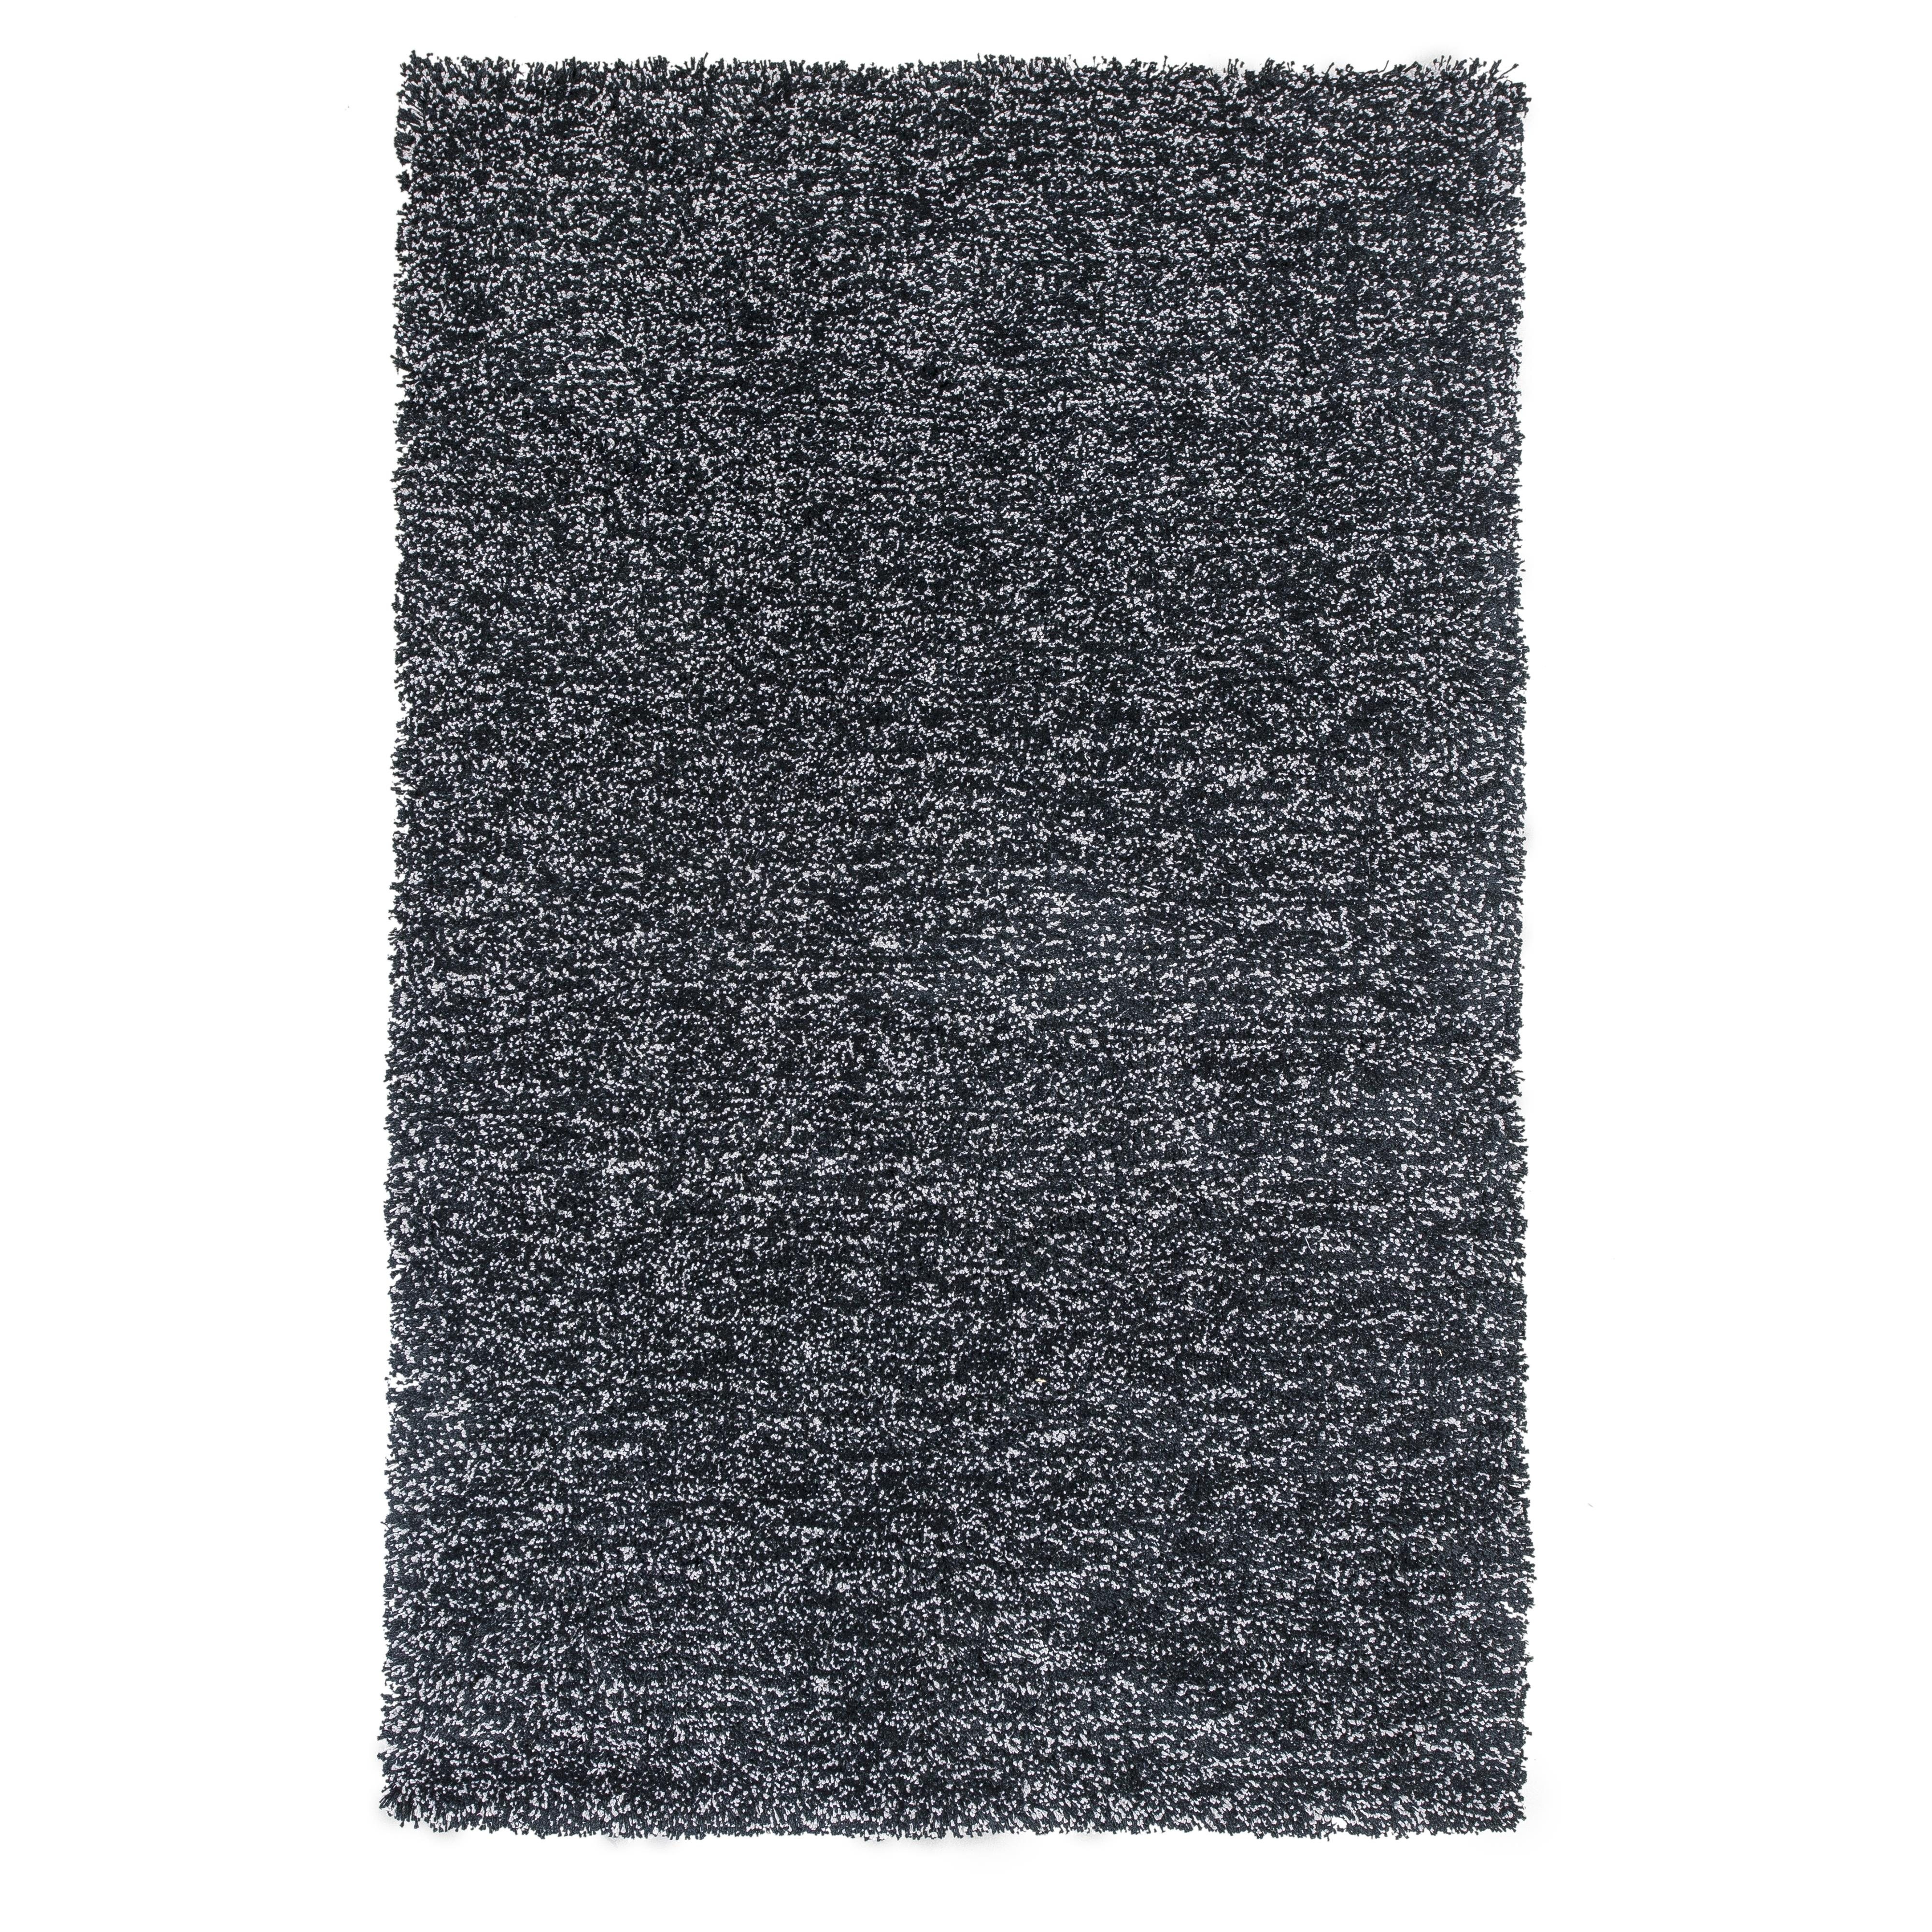 Bliss 5' X 7' Rug by Kas at Walker's Furniture